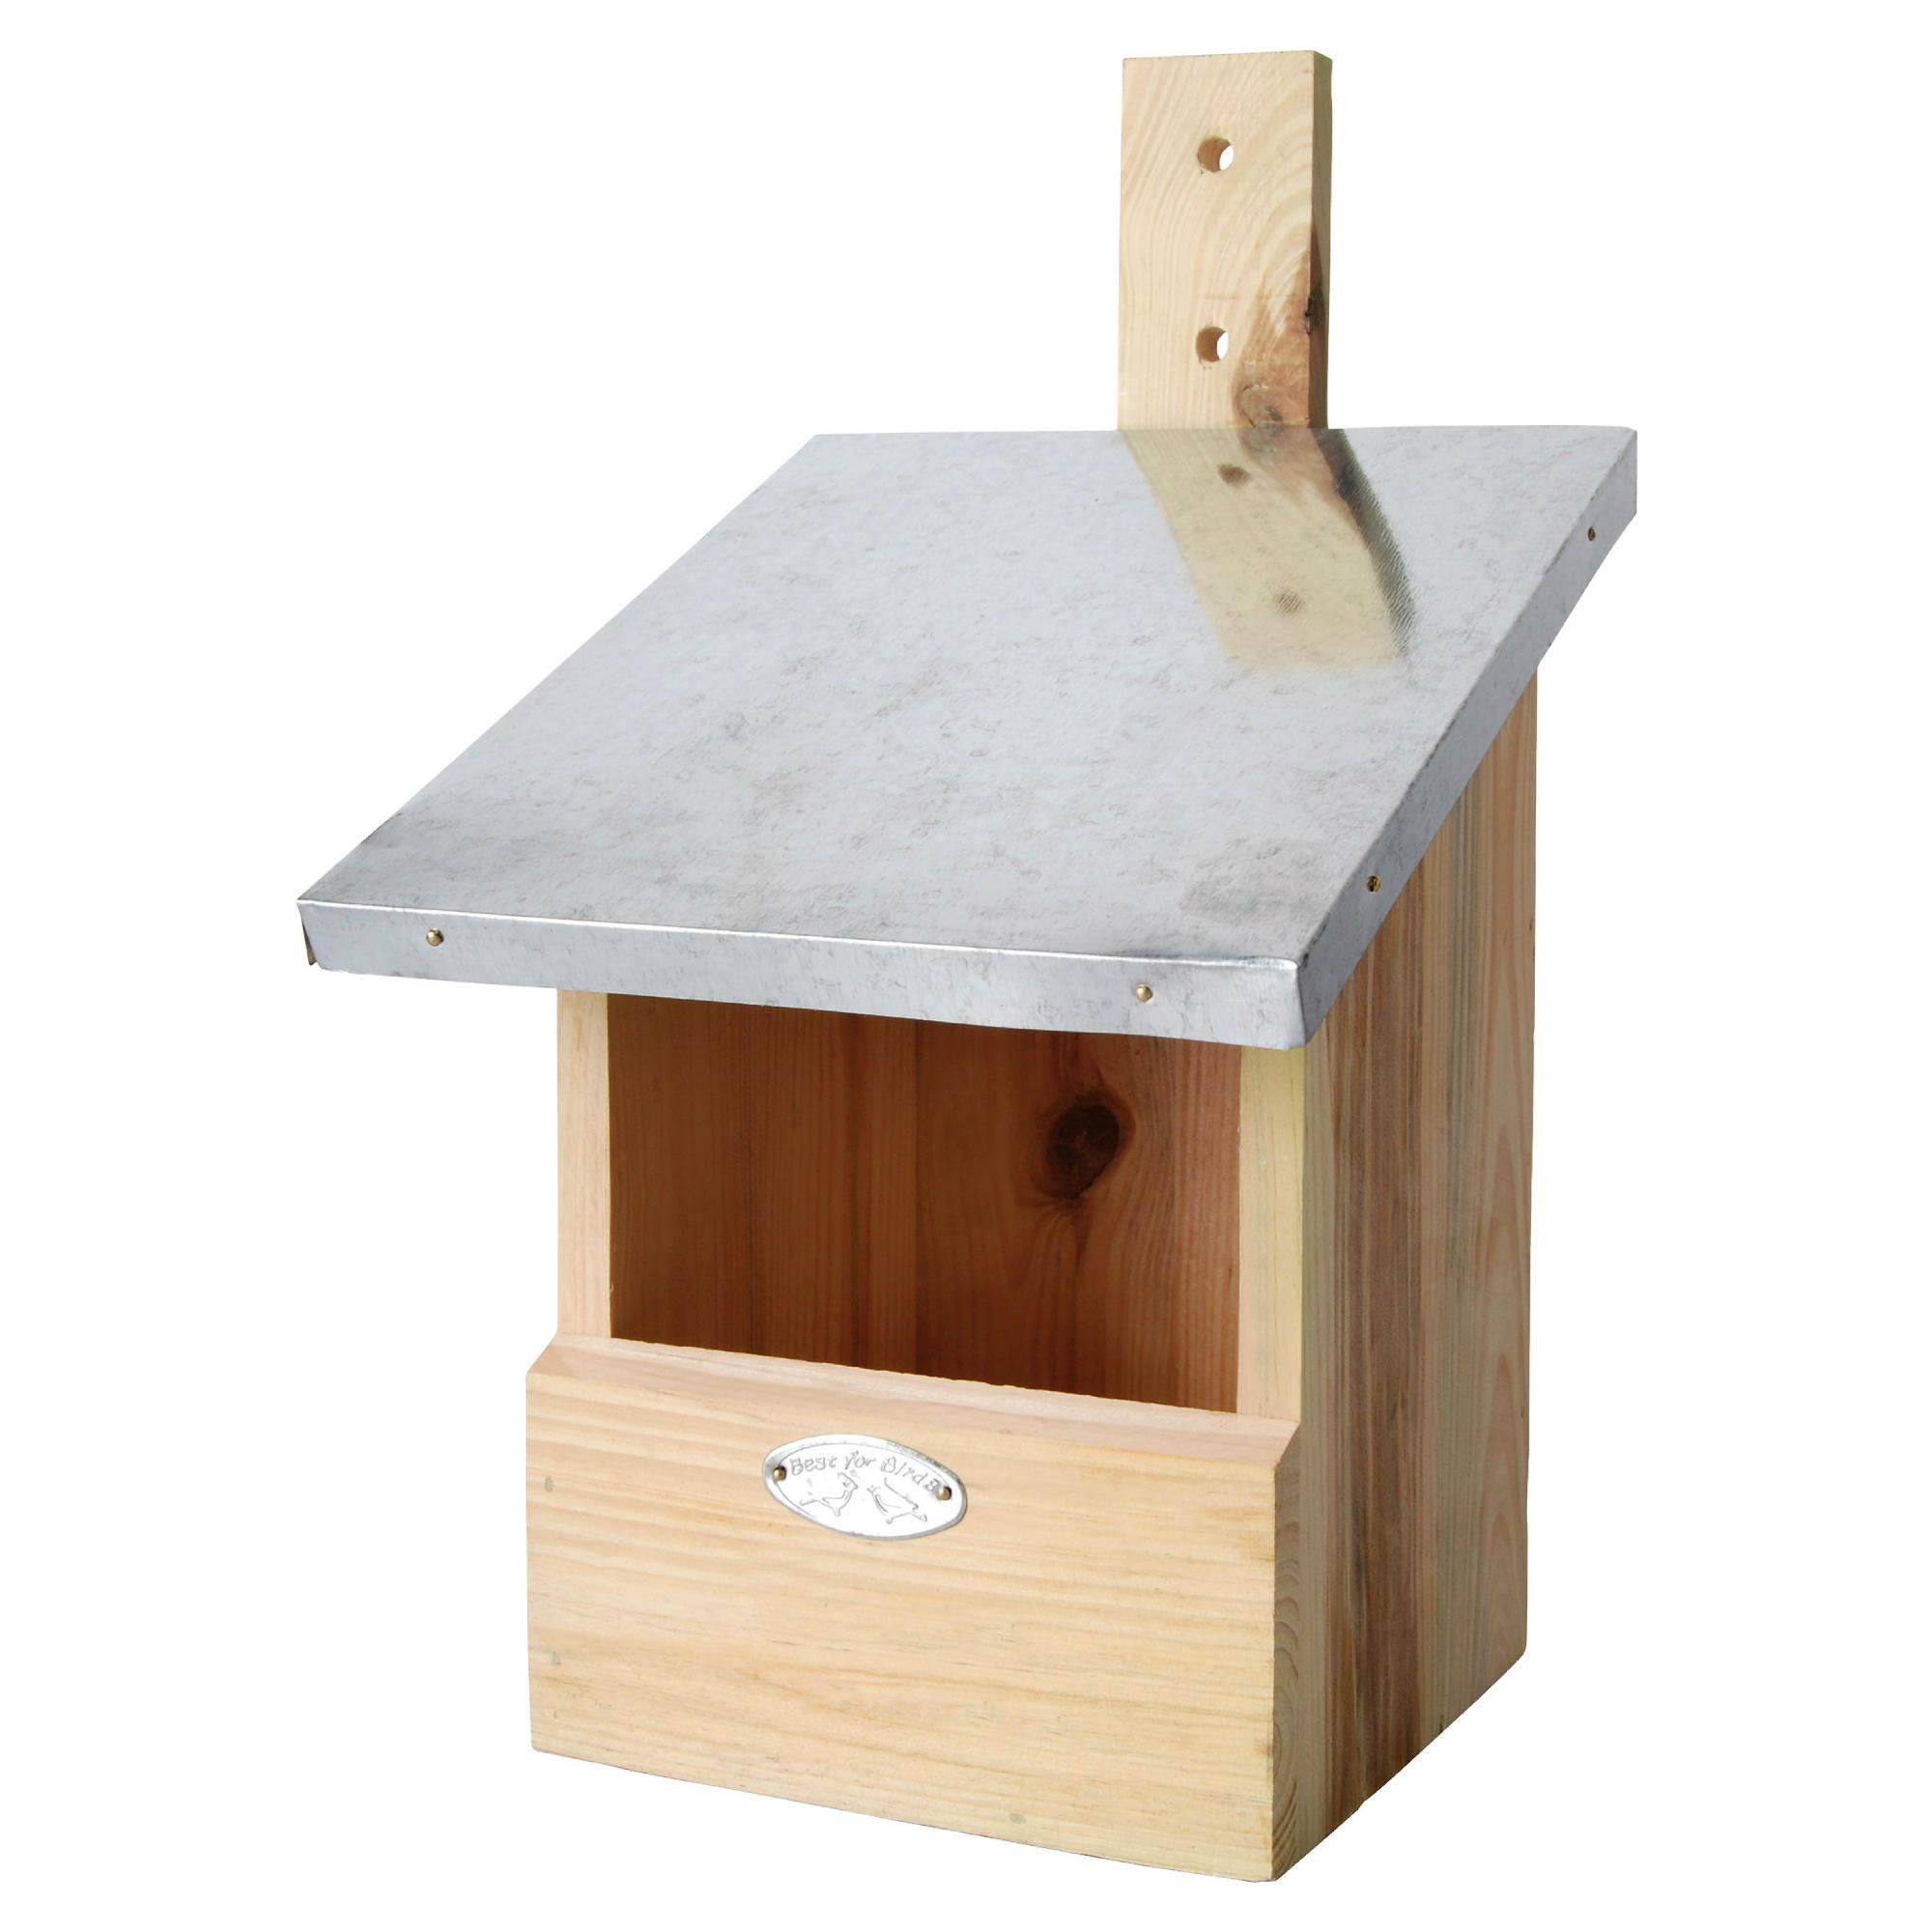 Fallen Fruits Robin/Flycatcher Nest Box 100% FSC Wood